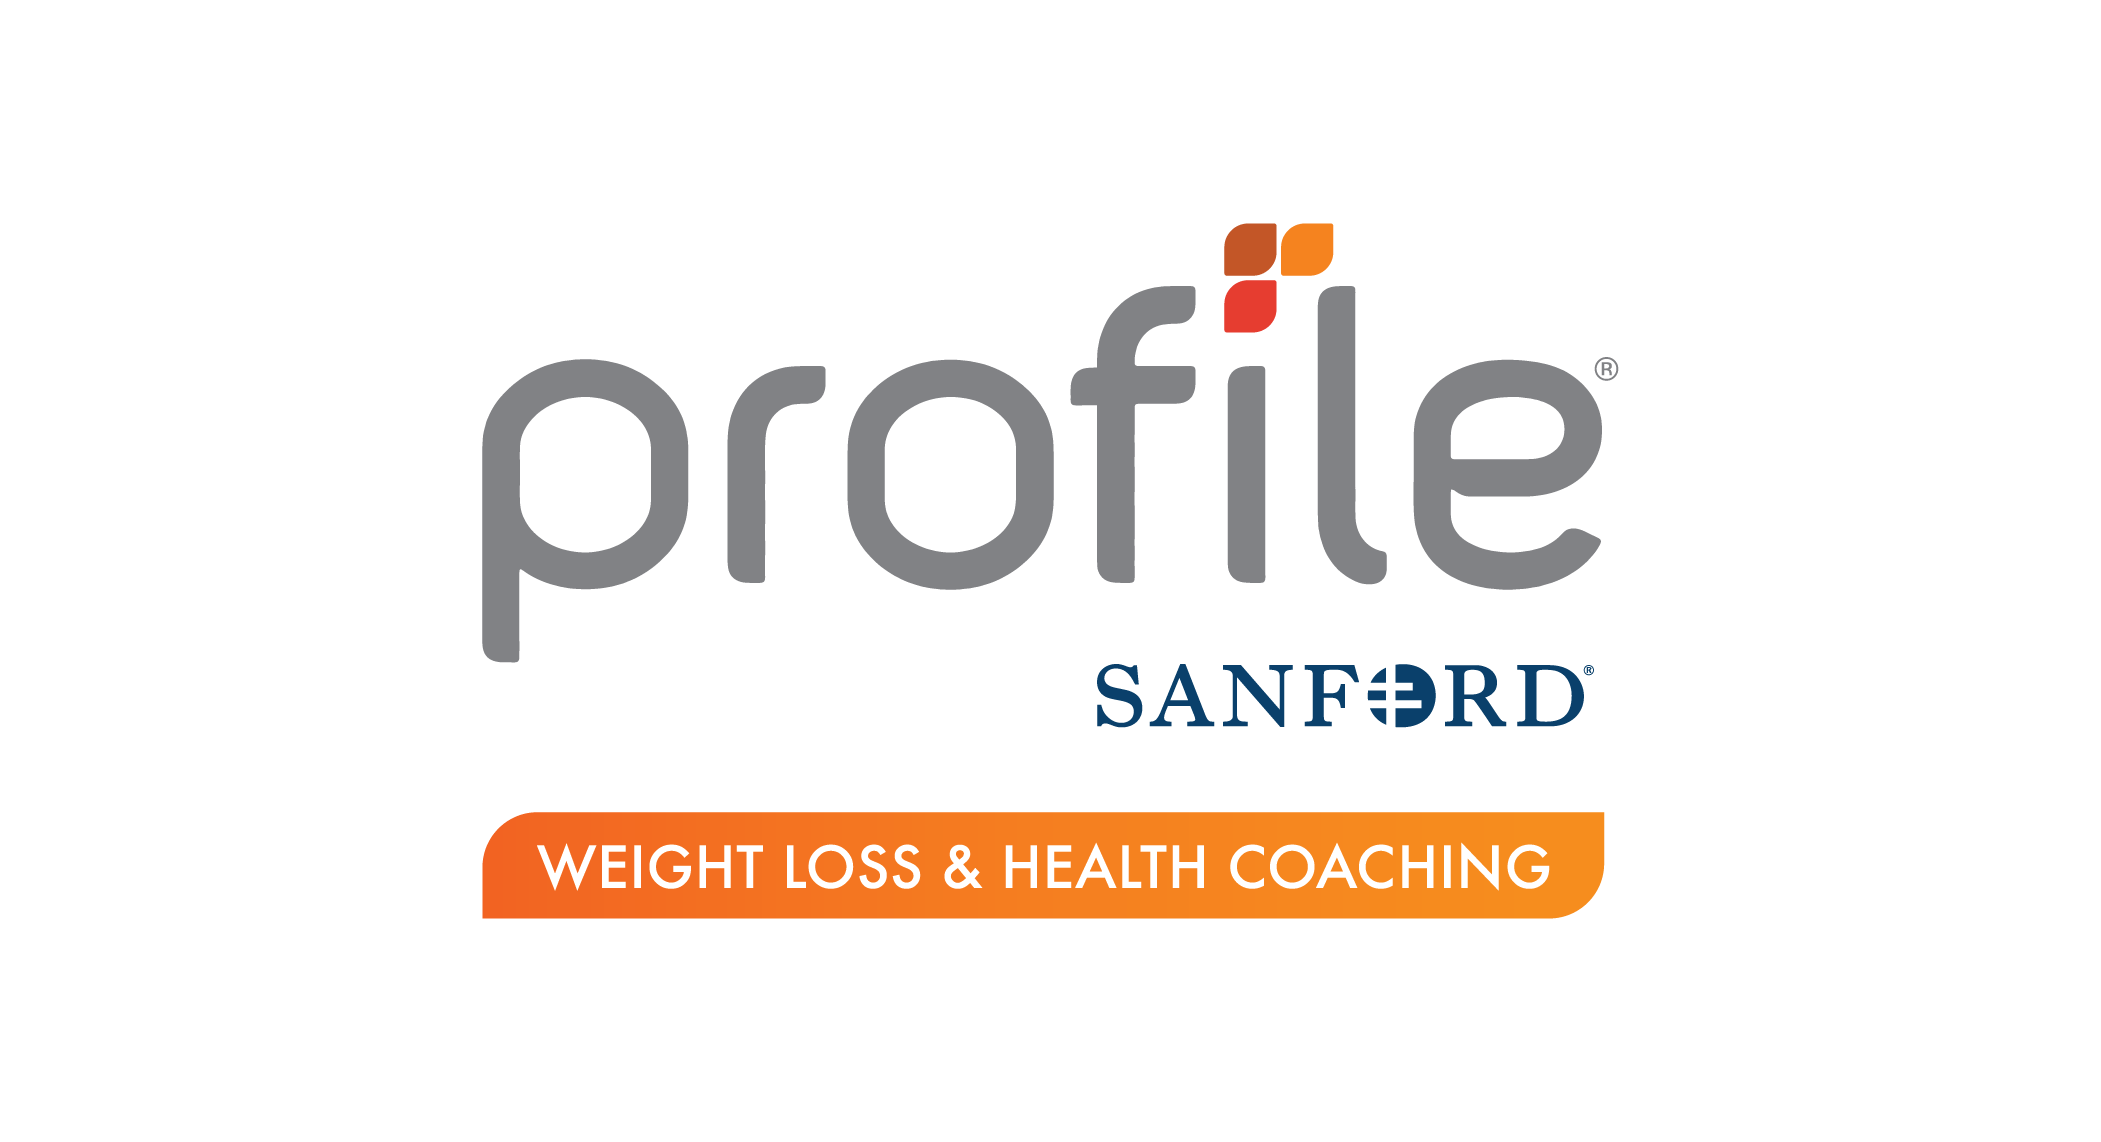 Profiles by Sandford